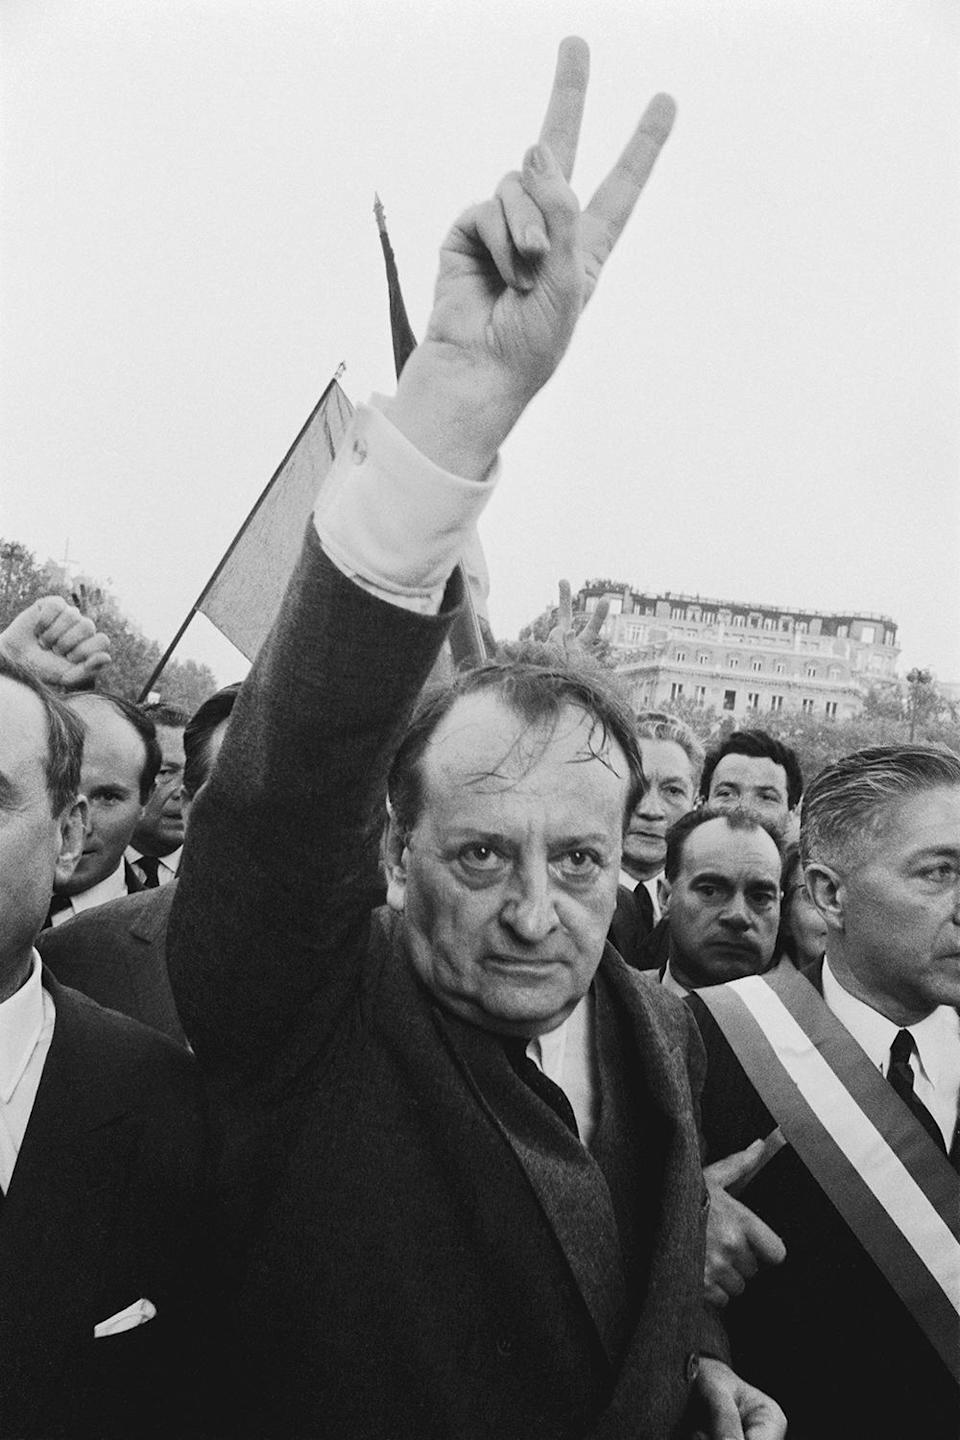 """<p>Andre Malraux and other Gaullists rally to President Charles de Gaulle's call in a radio speech for the """"silent majority"""" to demonstrate against the rioting students and workers. They led more than a half-million supporters to the Arc de Triomphe, where the Gaullist leaders placed a symbolic wreath at the Tomb of the Unknown Soldier in Paris, May 30, 1968. (Photo: Gökşin Sipahioğlu/SIPA) </p>"""